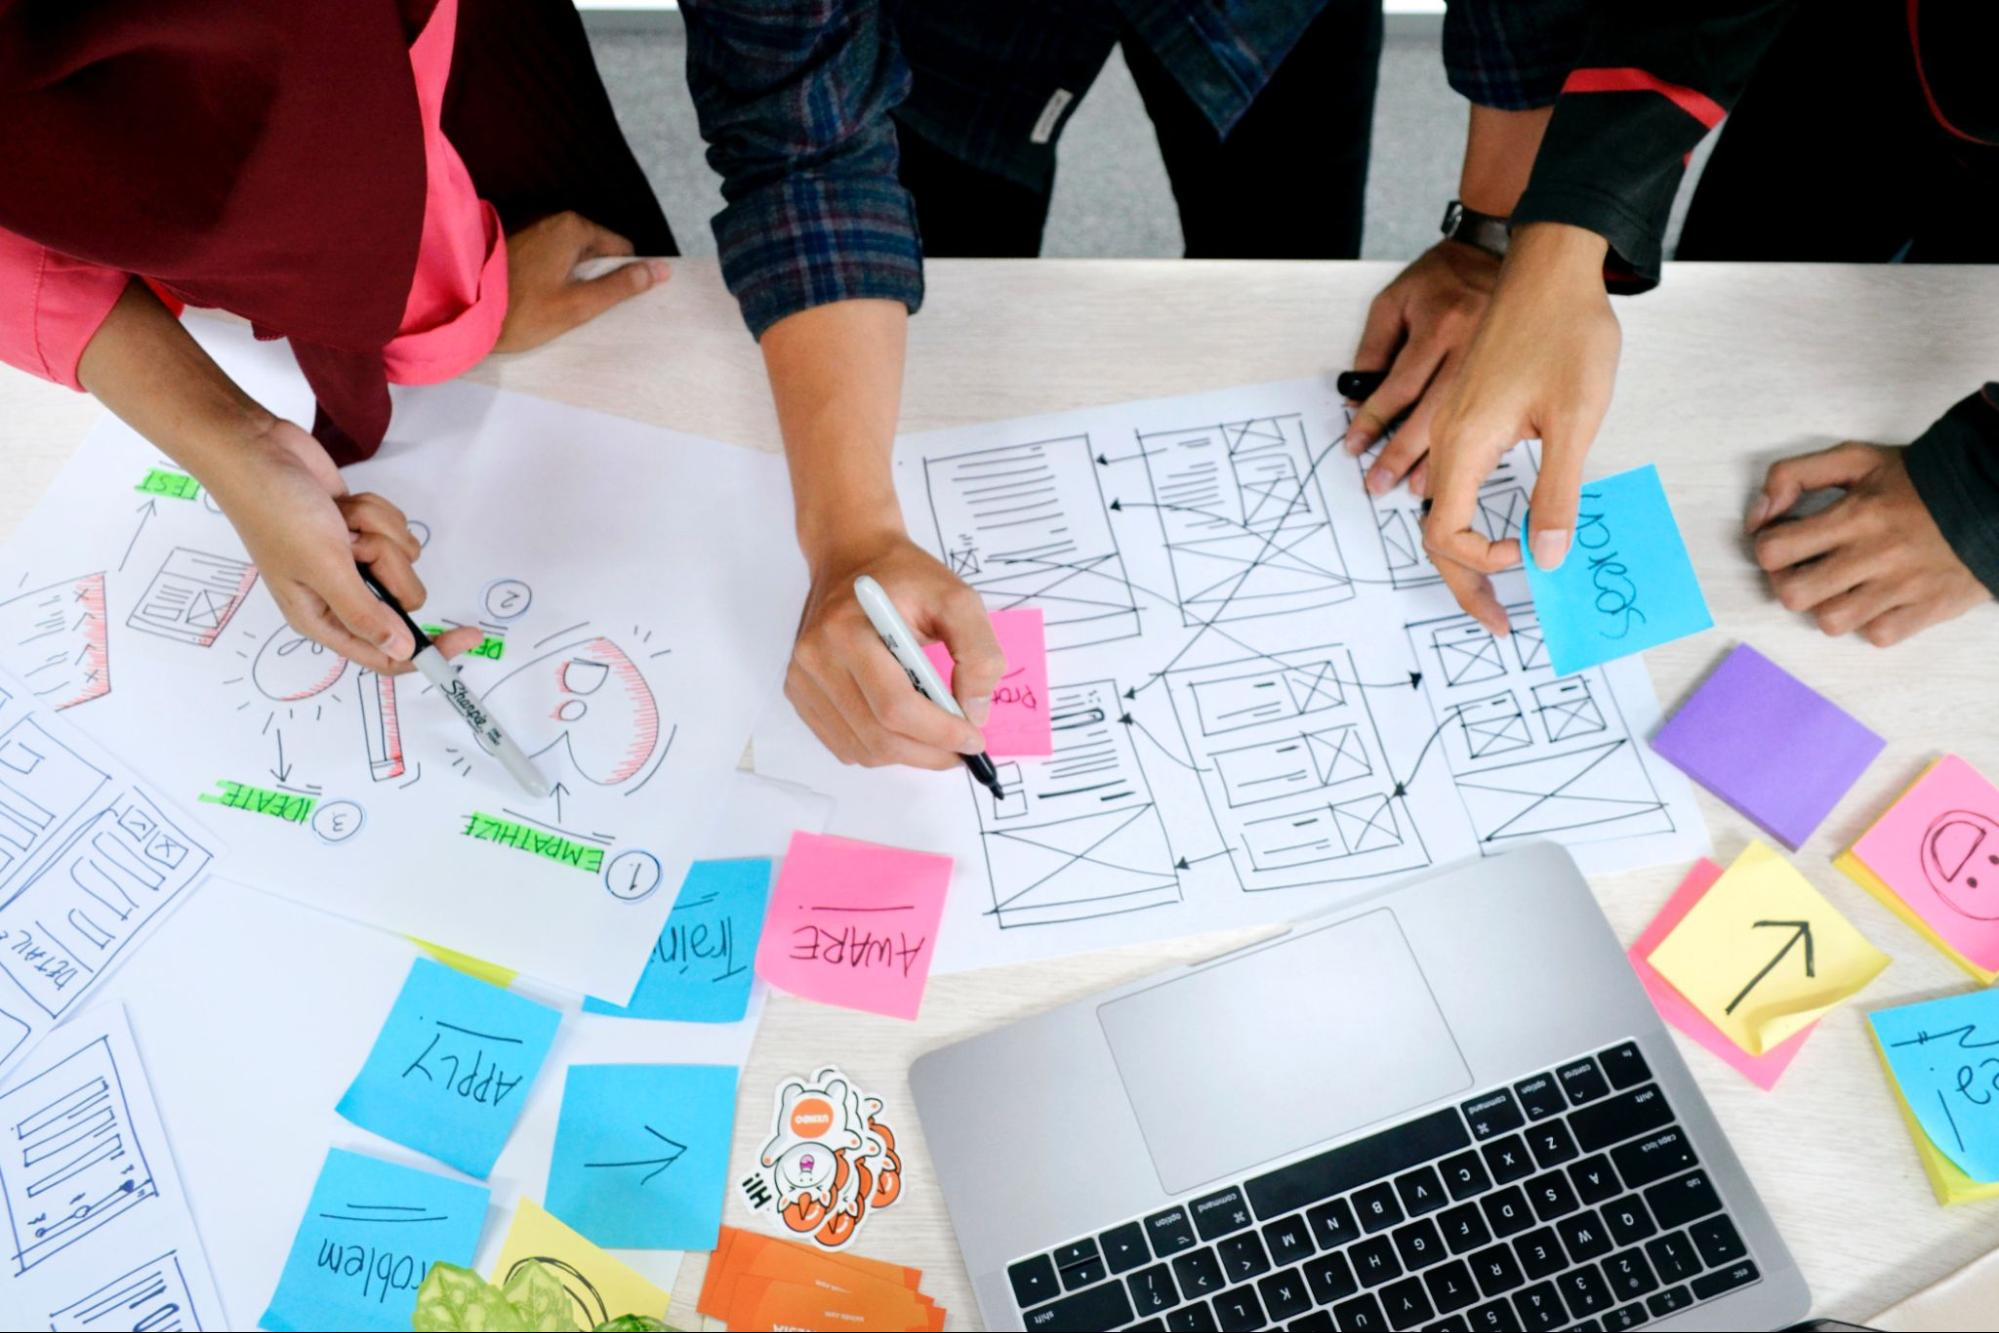 UI/UX Design and Prototyping - The Basics